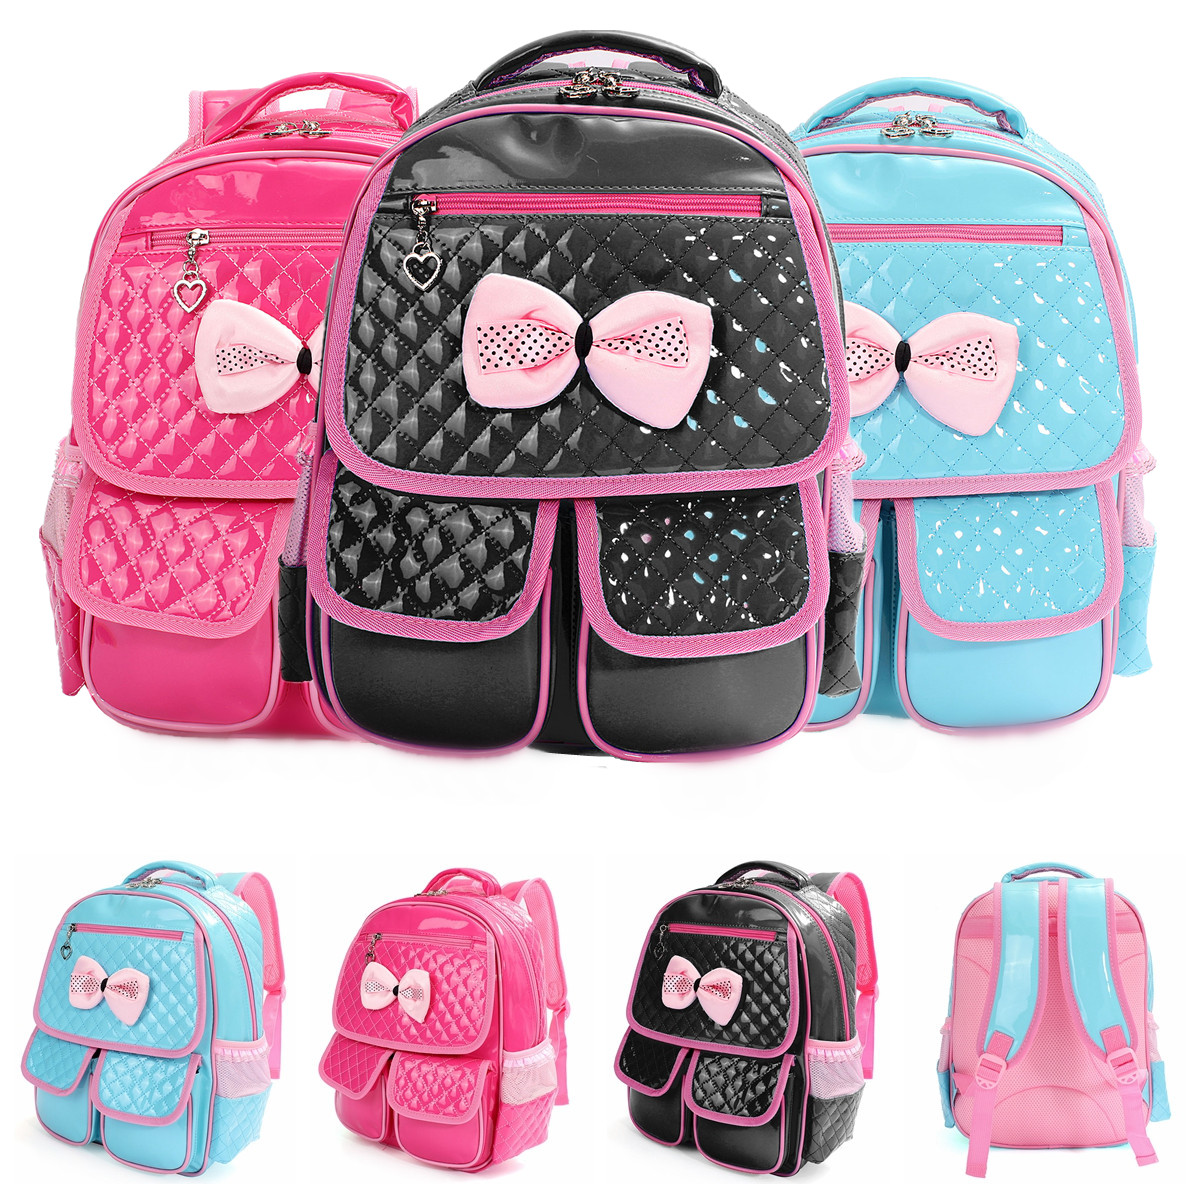 Cute Little Girl Backpacks pmphfK9h